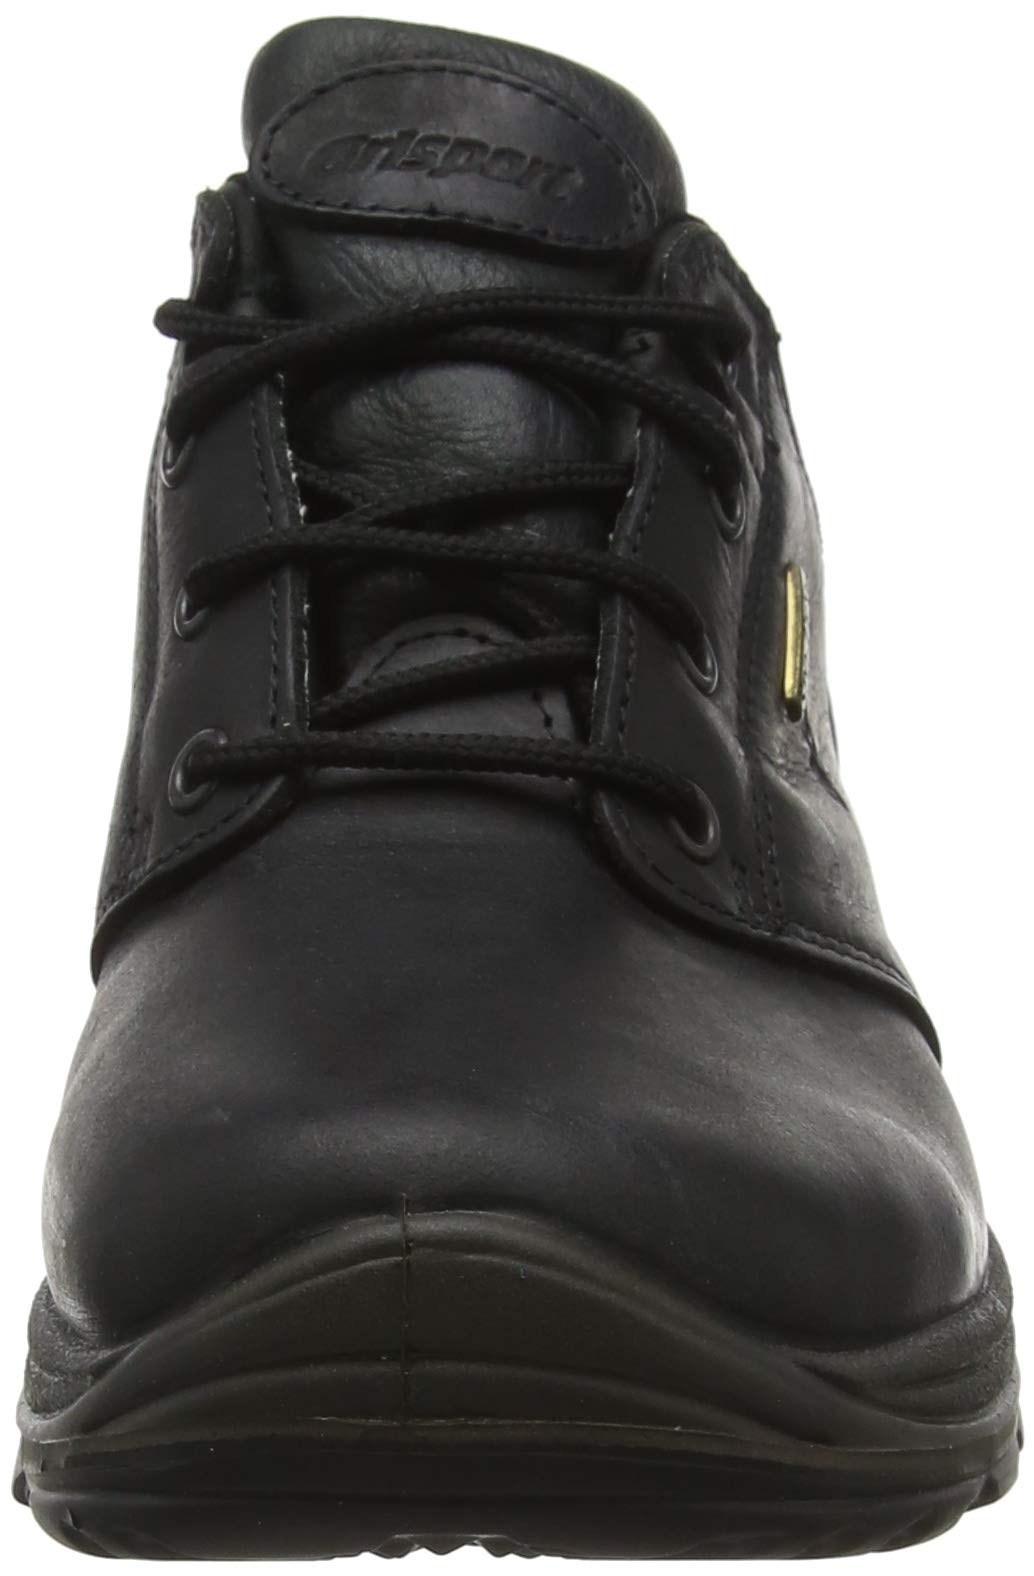 Grisport Unisex Adults Exmoor Low Rise Hiking Boots 4